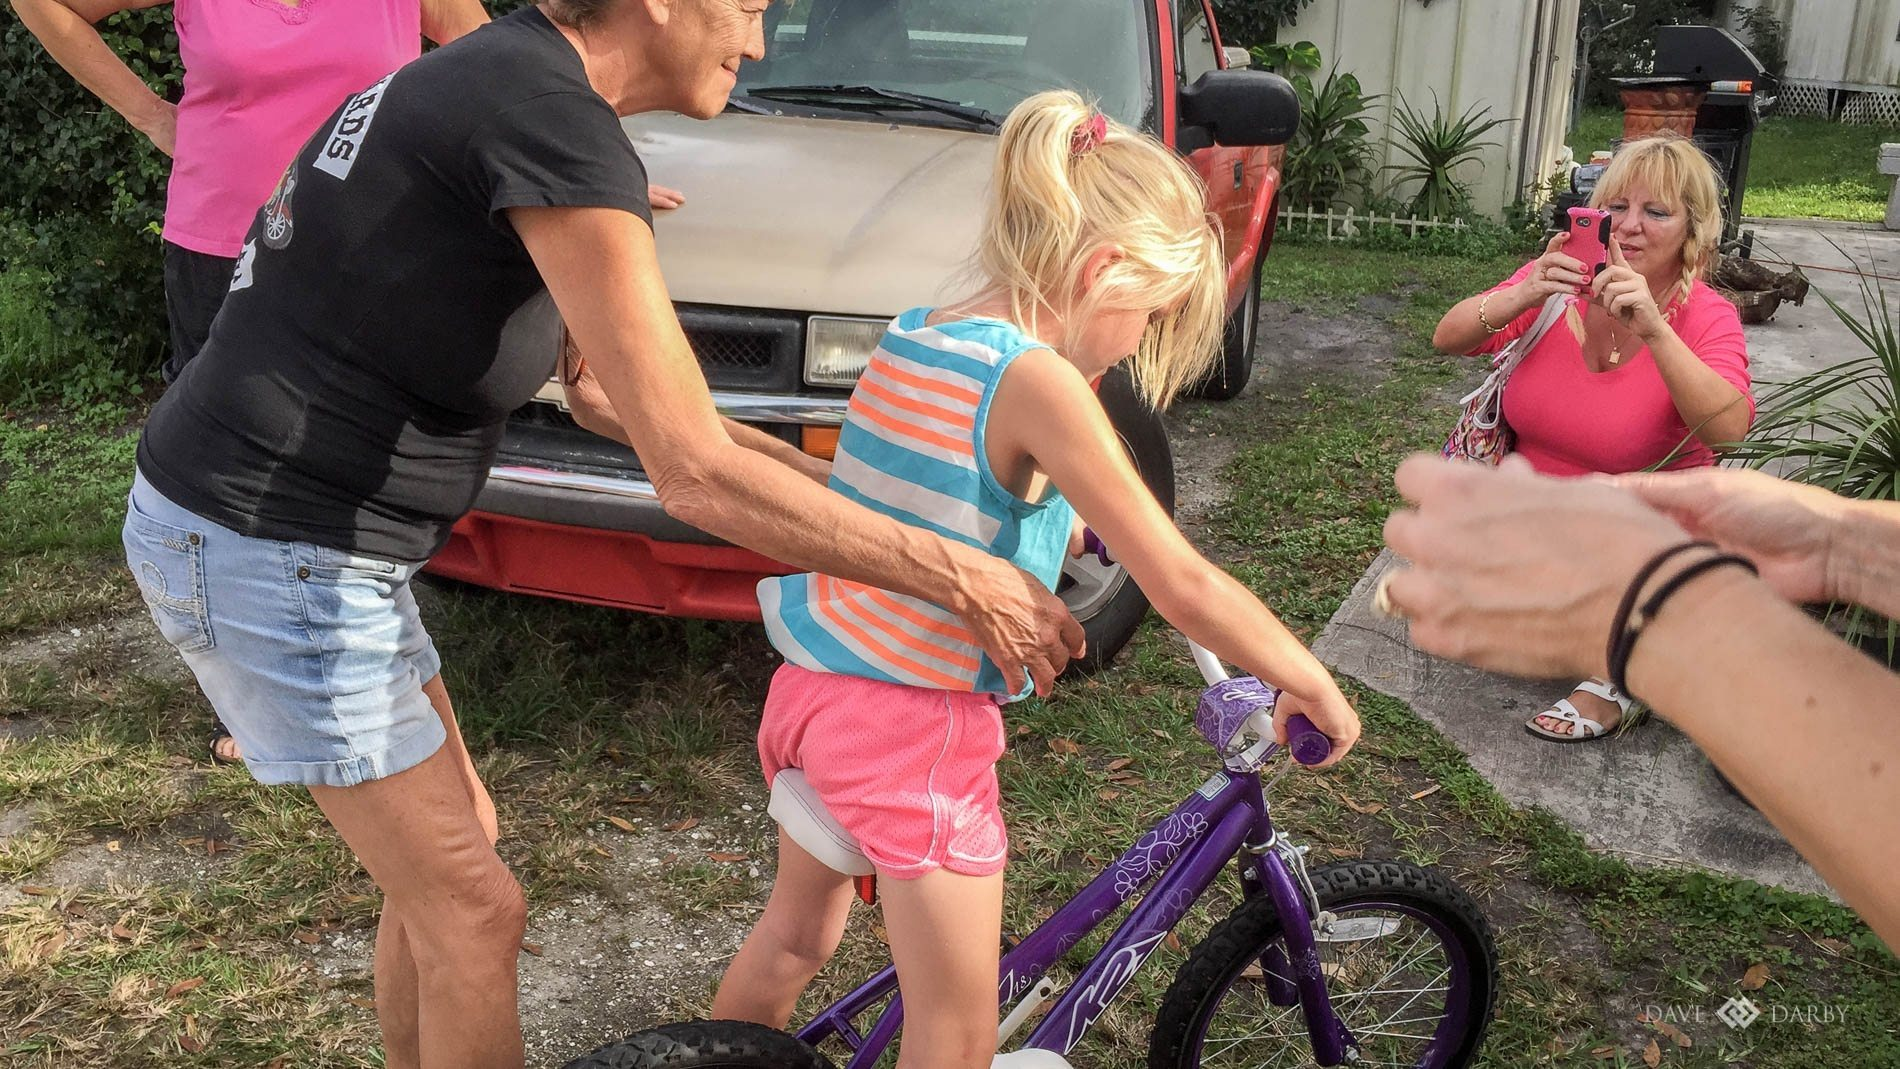 A happy little girl who had just told her Grandma that she wished for a bike for Christmas.